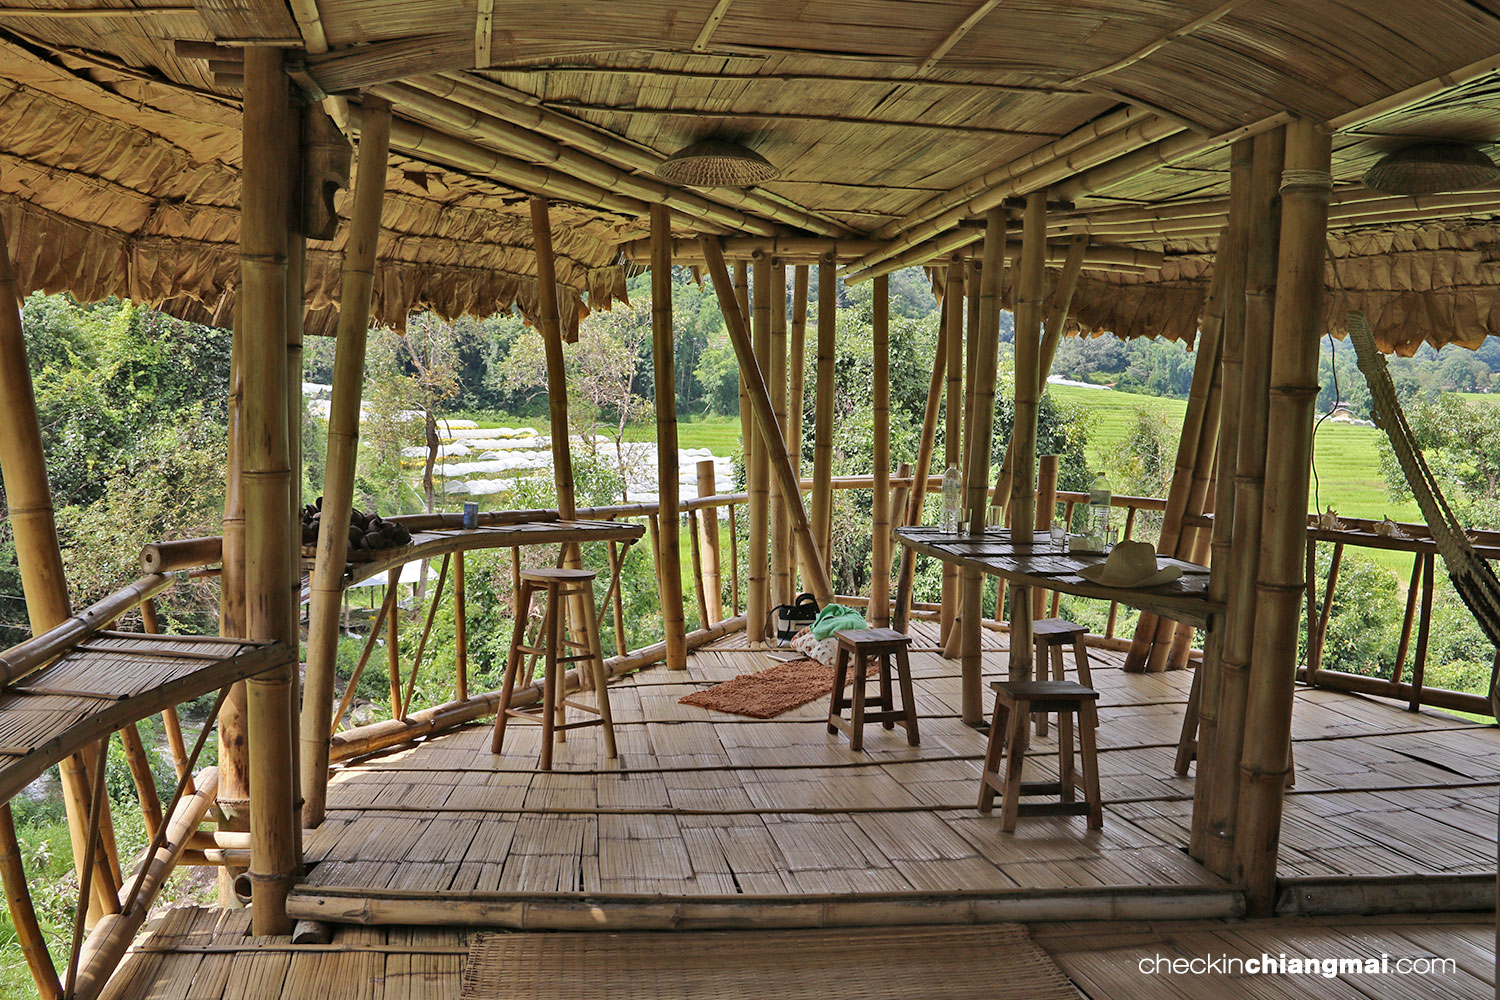 GiantBambooHut_006